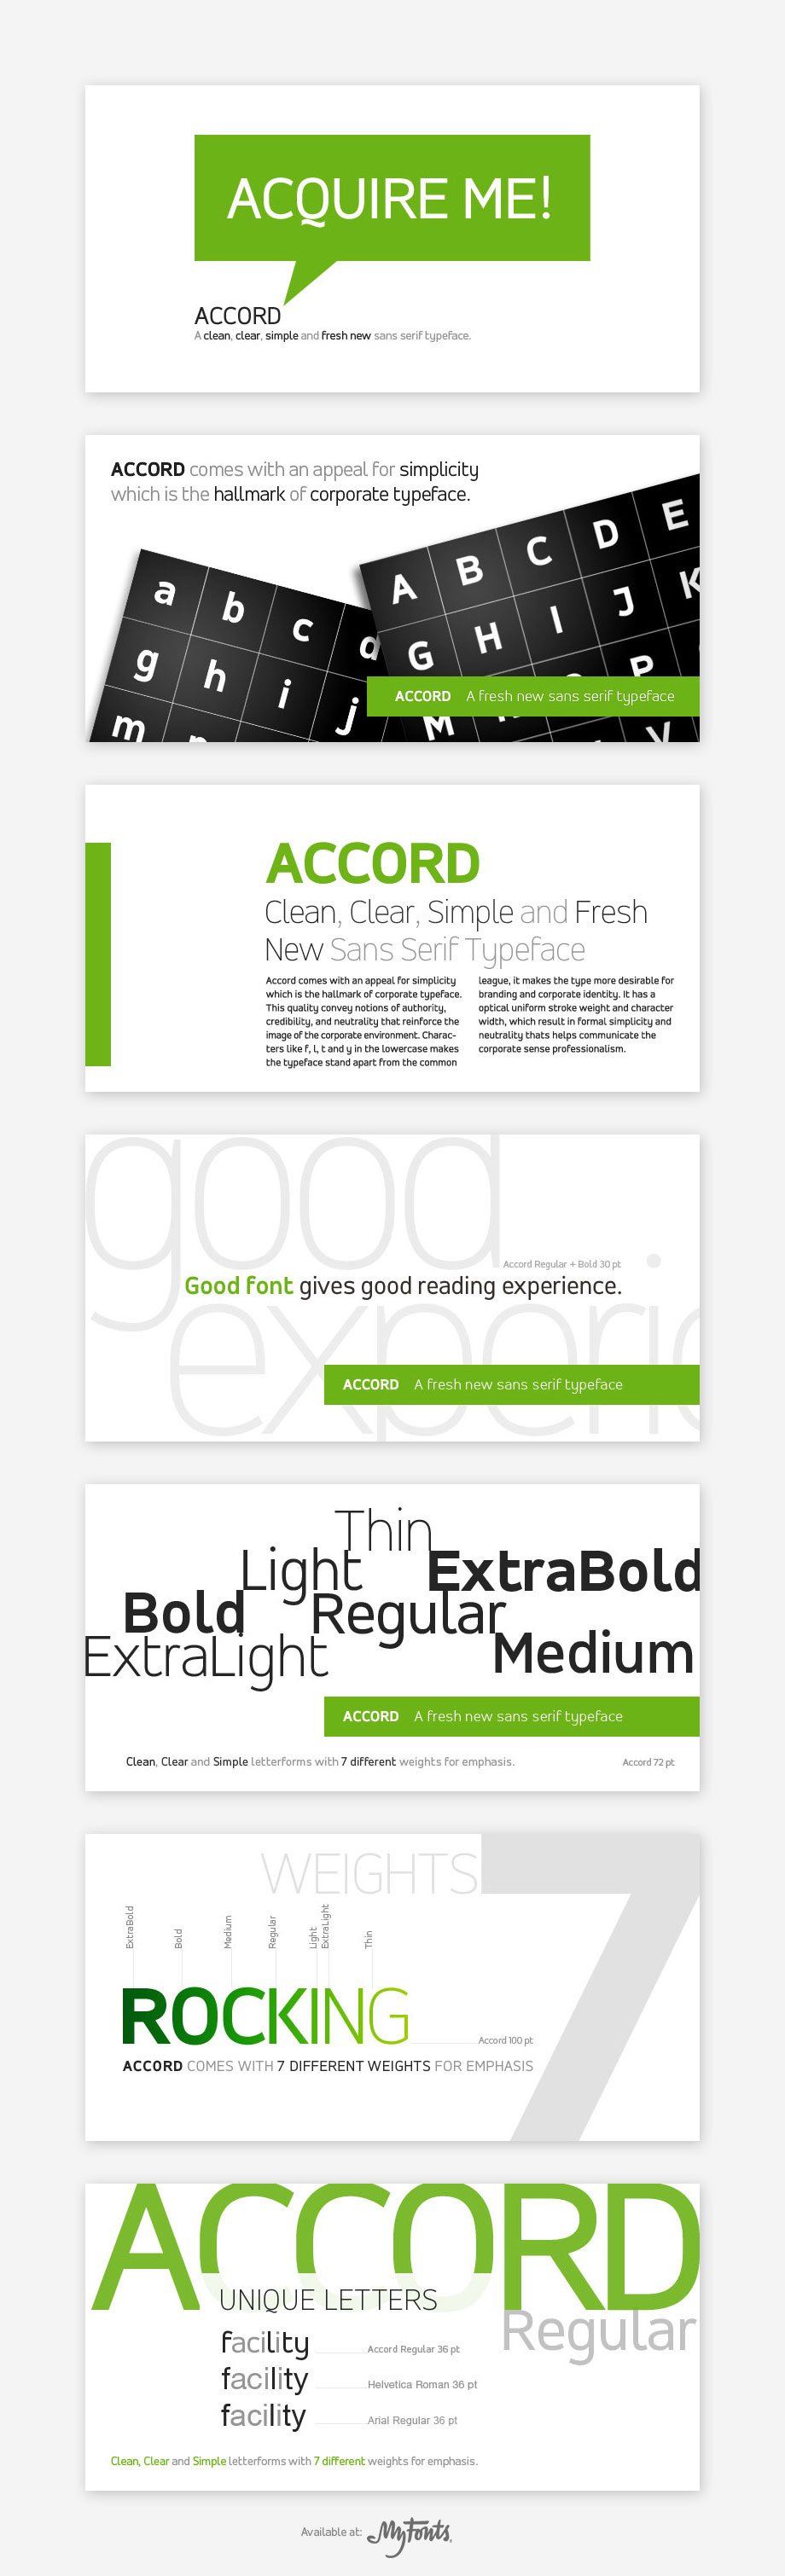 Accord Font Family at MyFonts by akkasone